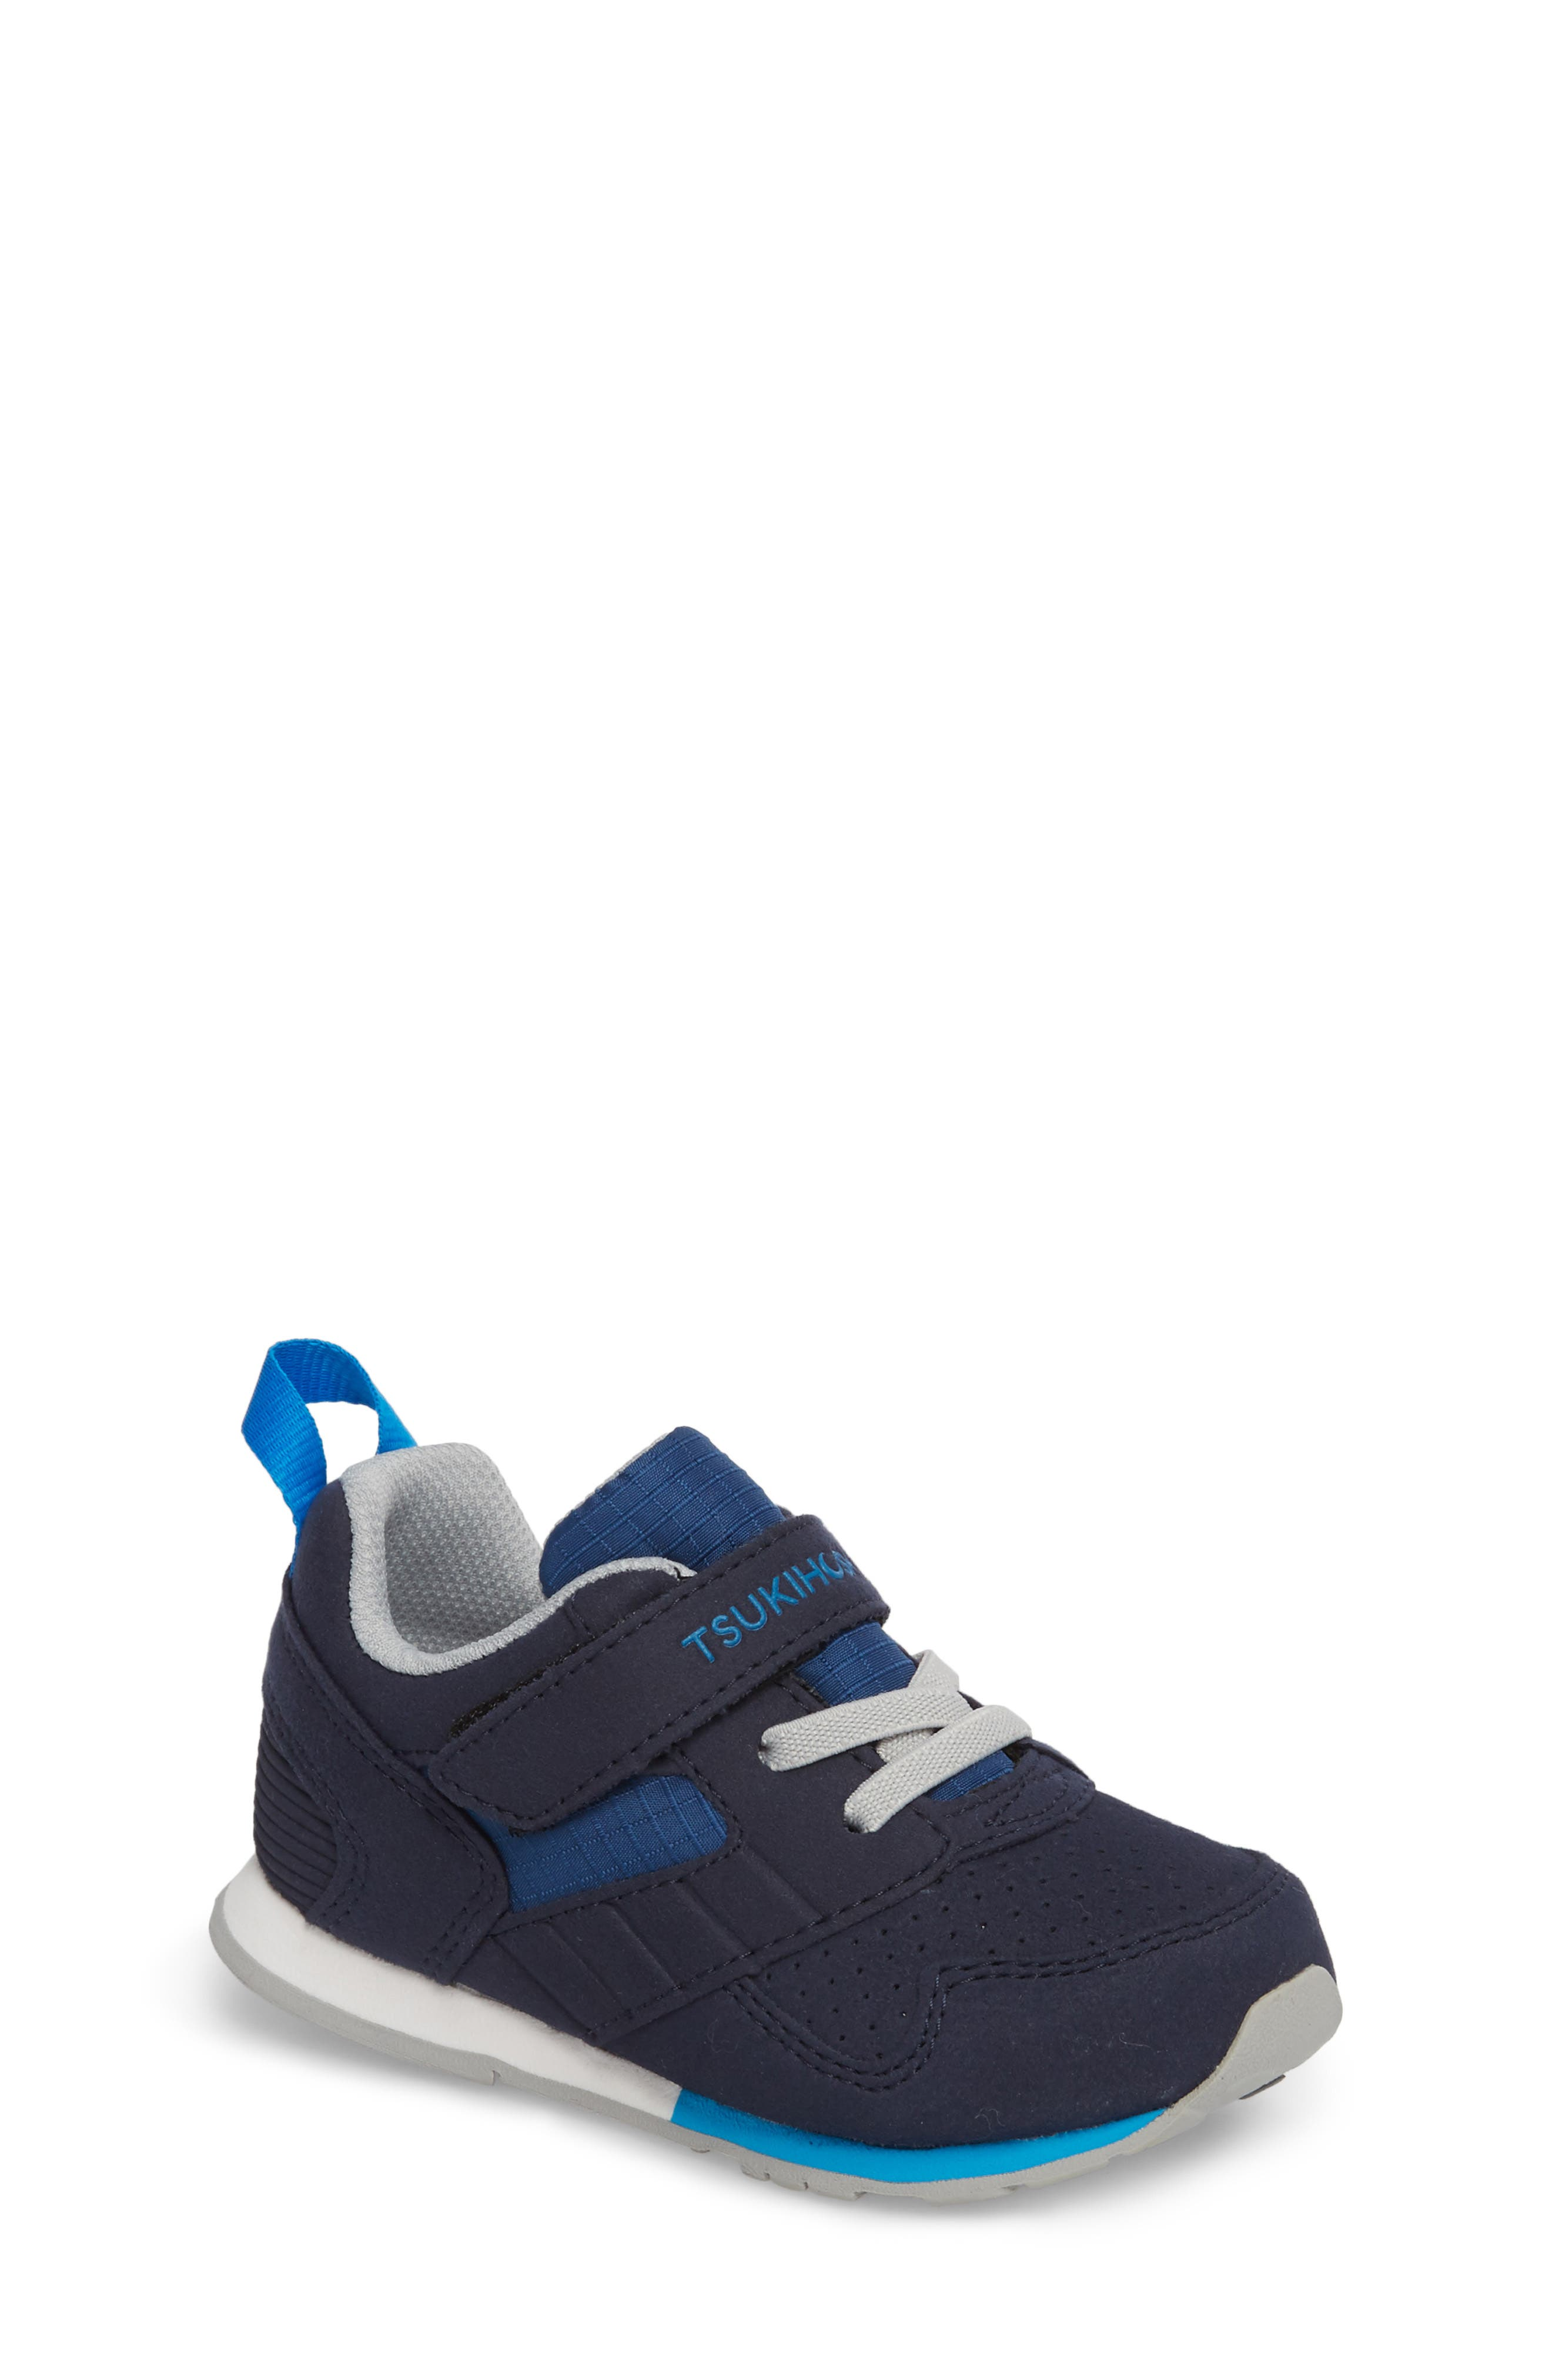 Tsukihoshi Racer Washable Sneaker (Walker, Toddler & Little Kid)